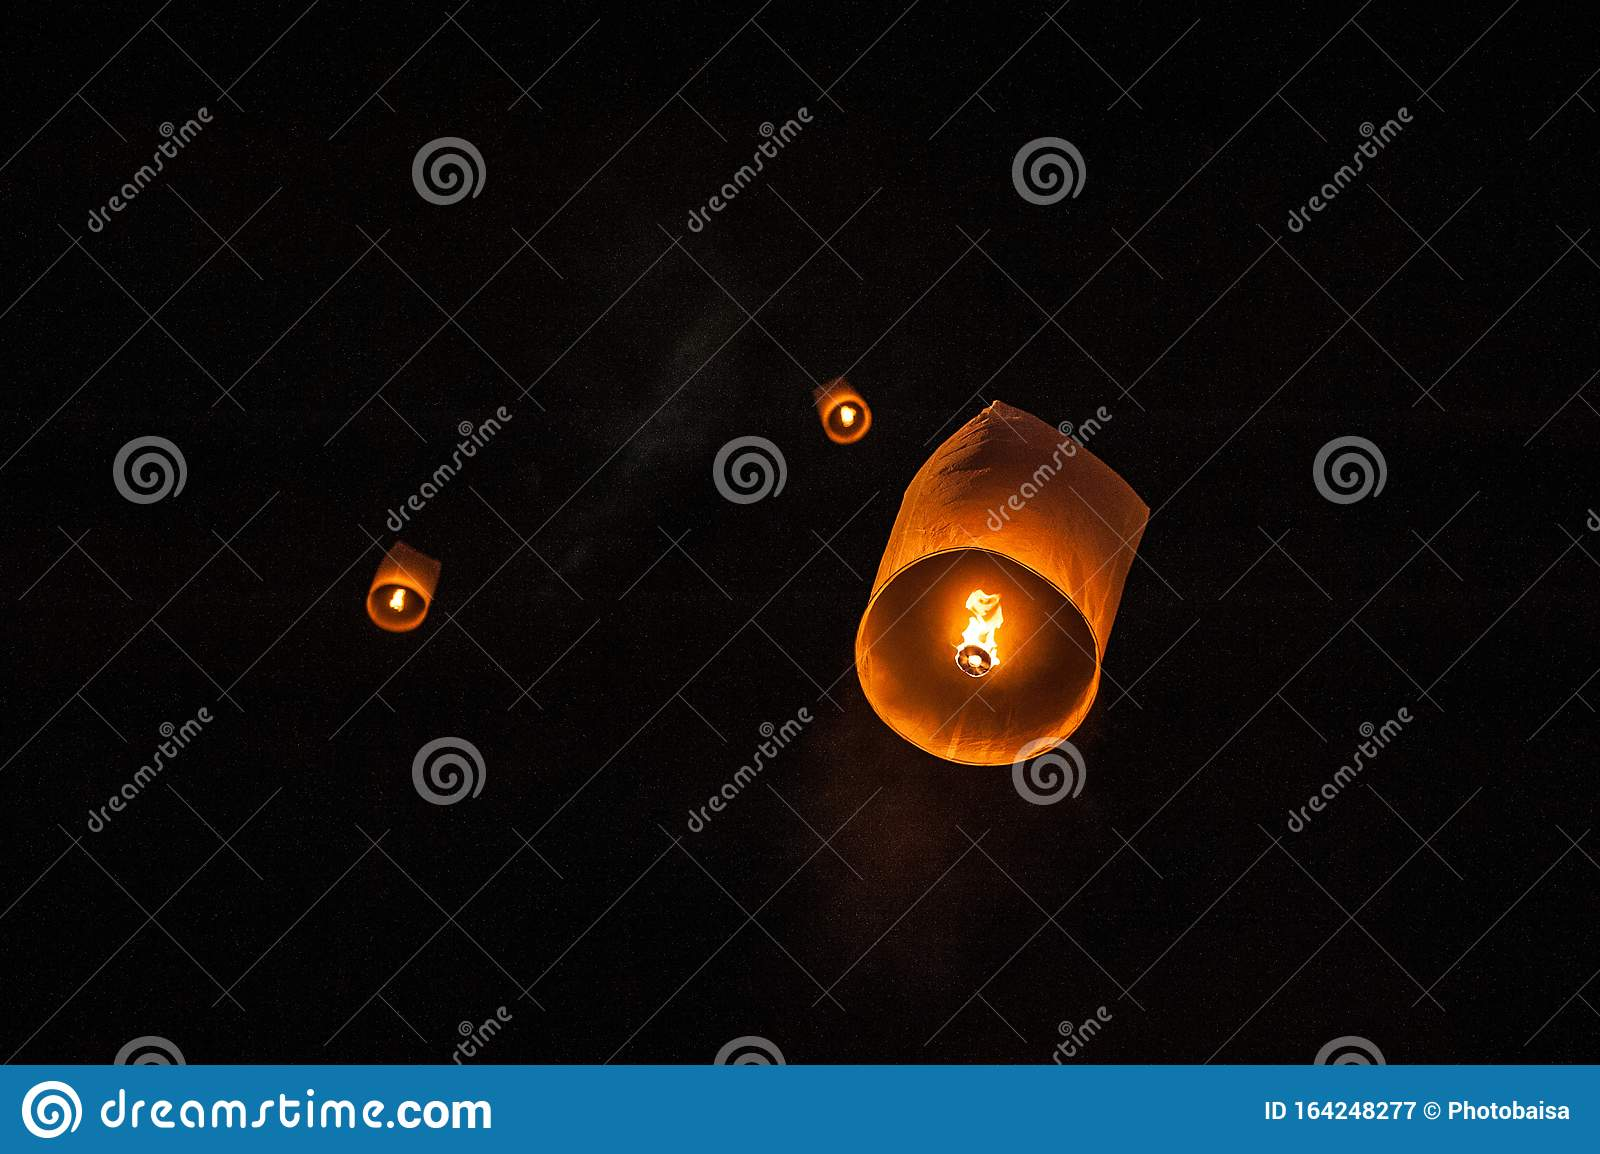 Sky Lanterns Flying Lanterns Floating Lanterns Hot Air Balloons On Dark Night Sky With Moon New Year And Yeepeng Festival Stock Image Image Of Float Festival 164248277